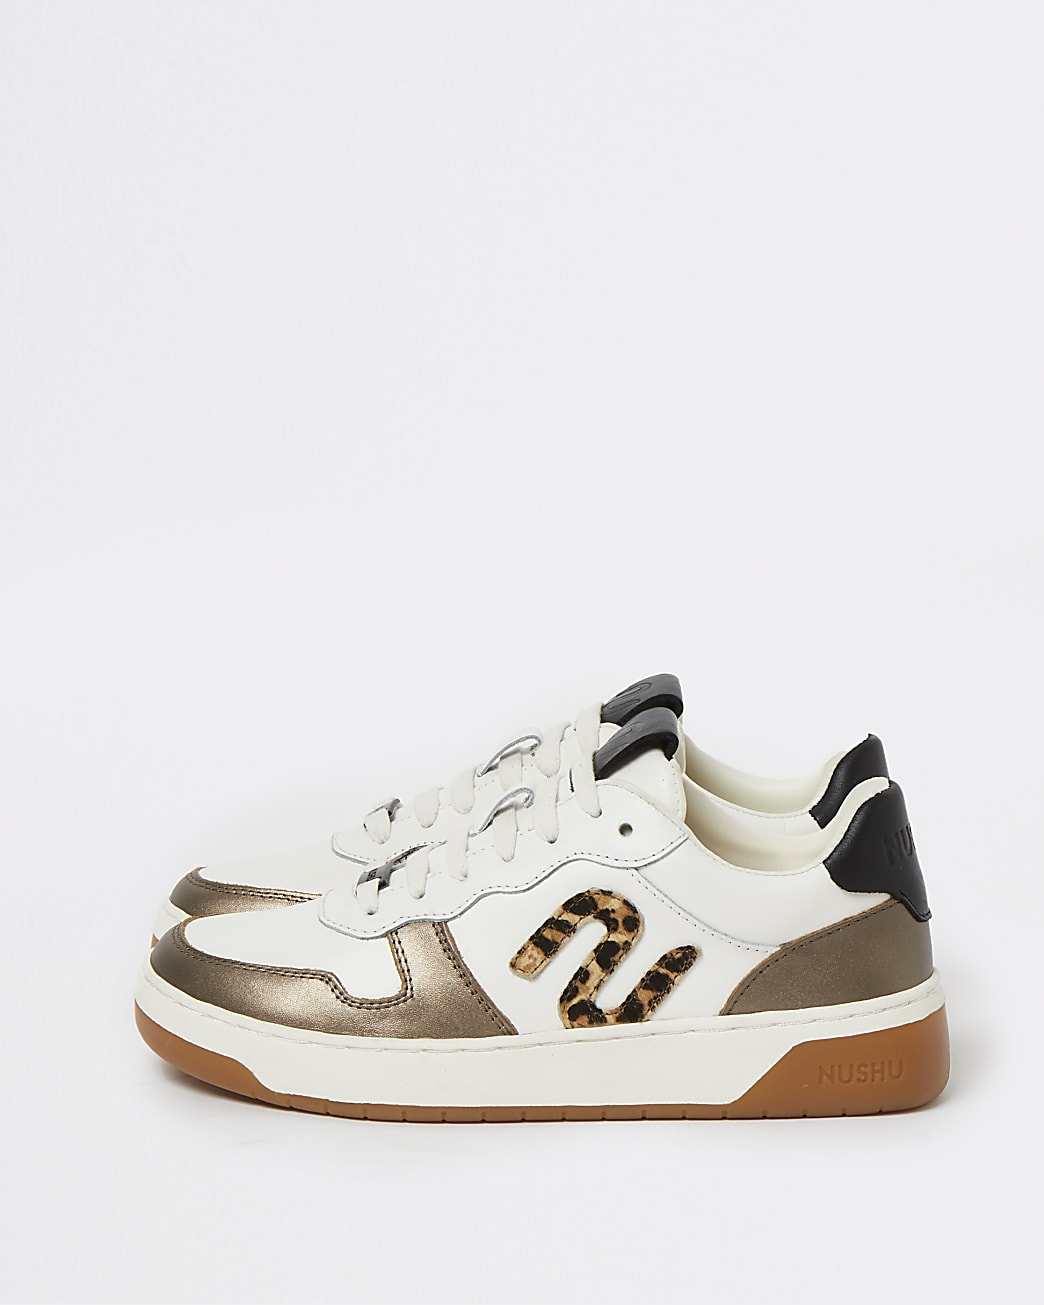 Brown NUSHU court trainers